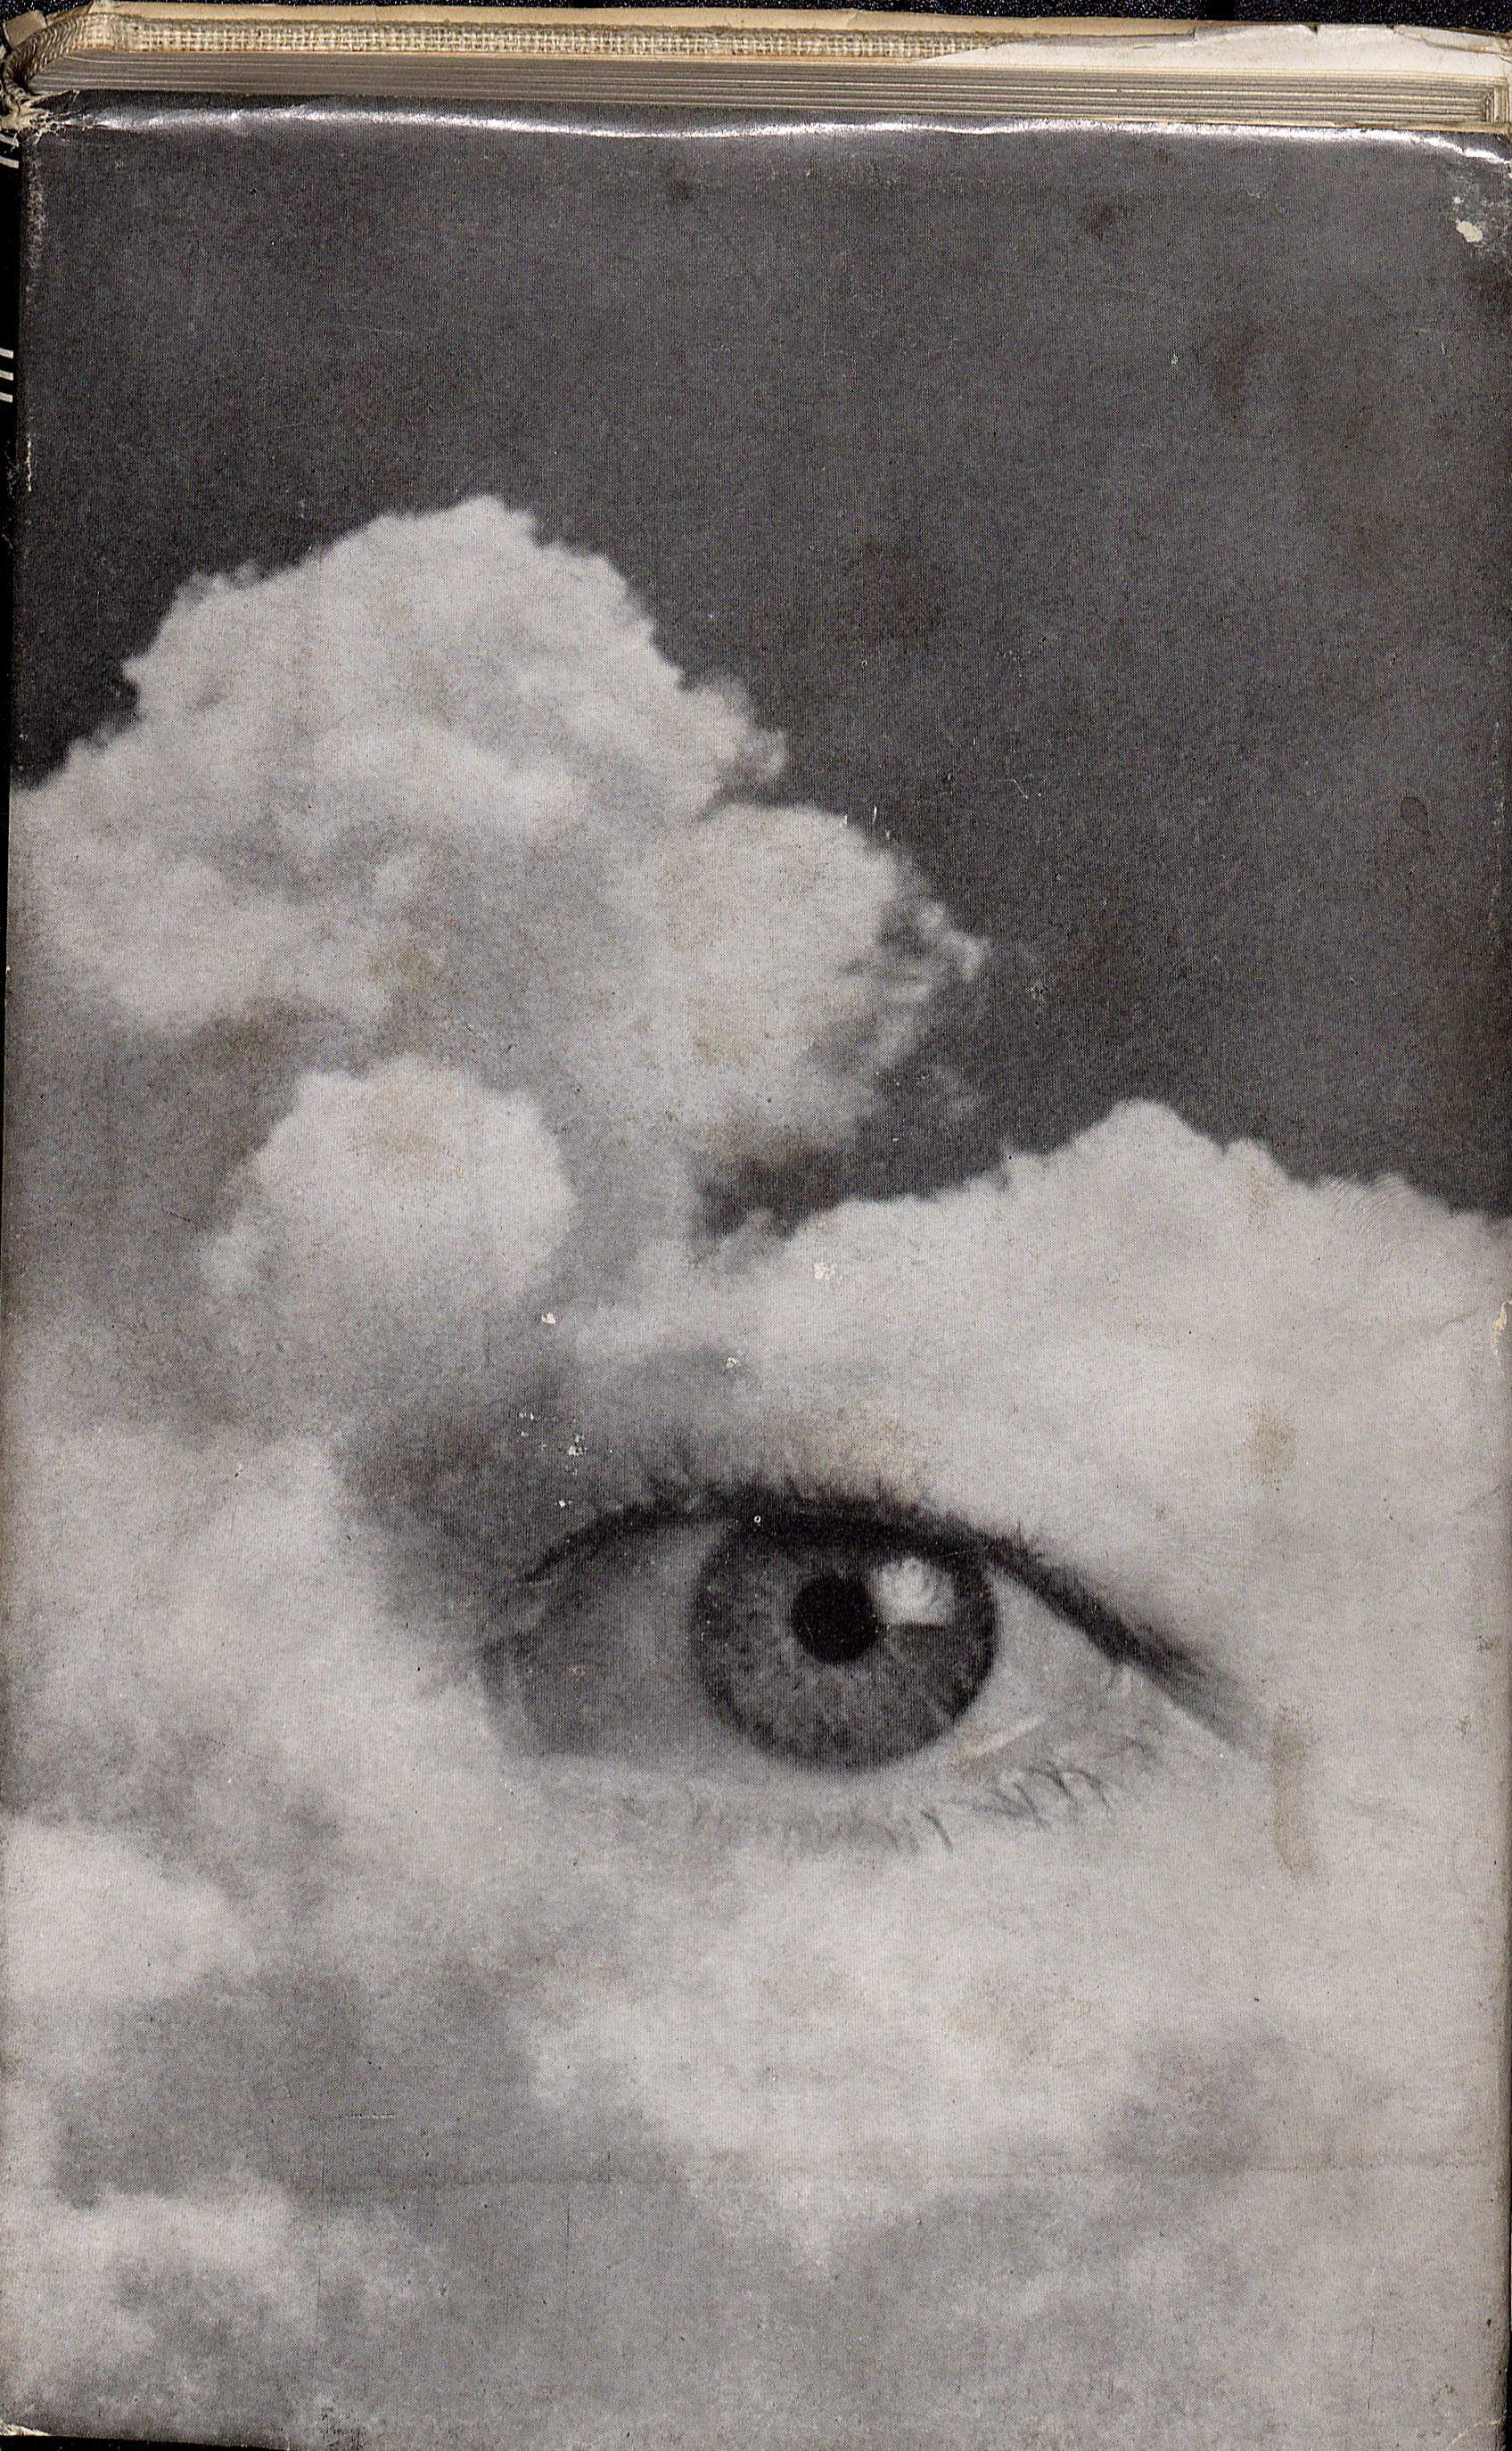 Henry Miller's The Cosmological Eye. New Directions, 1939. The eye in the cloud is James Laughlin's left eye. (PS3525 I5454 C6. Clifton Waller Barrett Library of American Literature. Image by Caroline Newcomb)